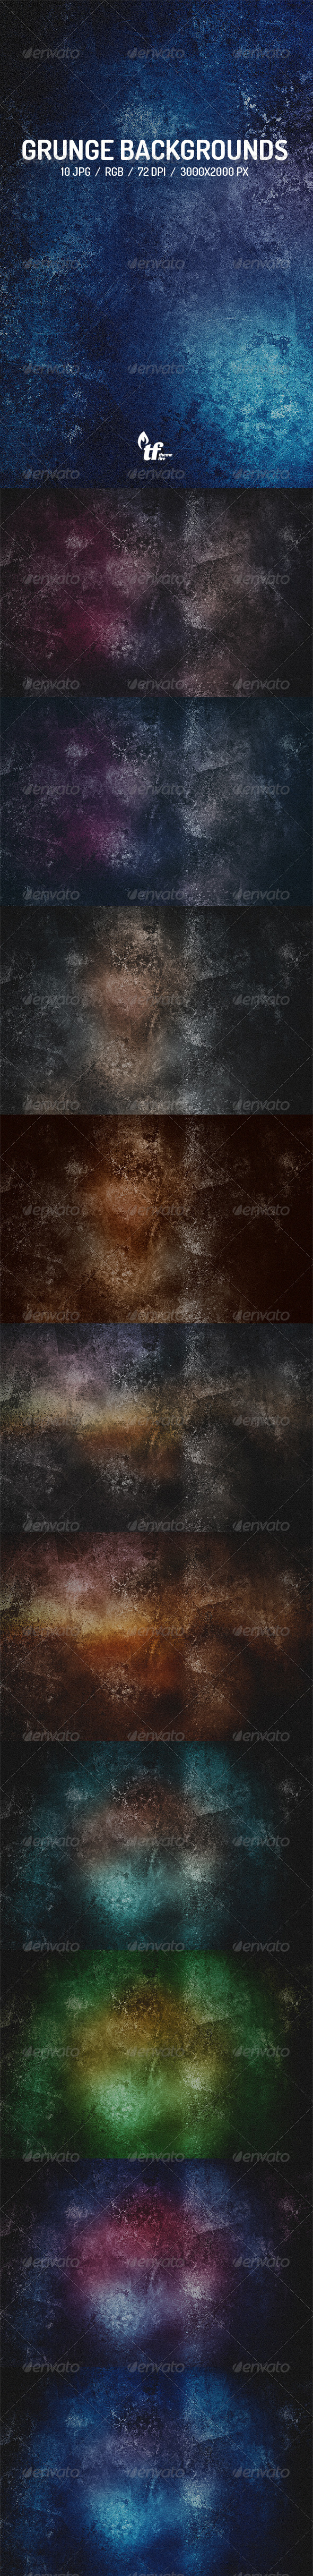 GraphicRiver 10 Grunge Backgrounds 8632477